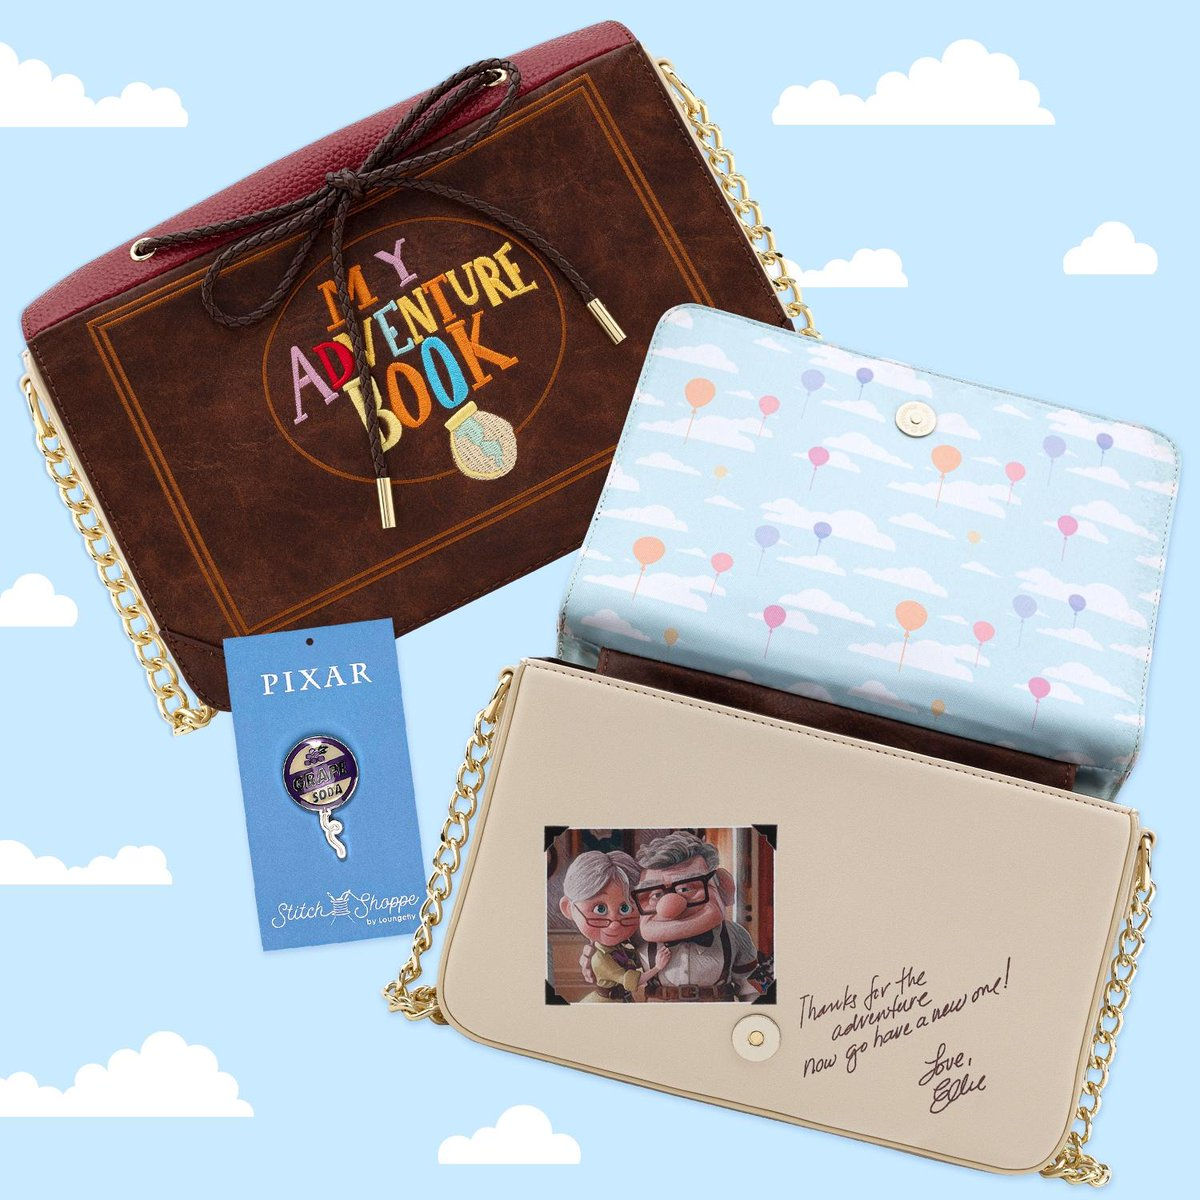 ☁️🎈☁️ We have a VERY special announcement today! We know how much you all loved the @stitchshoppebyloungefly Up! crossbody bag and asked for its return...so we listened!! Now available on bit.ly/35j4cCI! ☁️🎈☁️ #Loungefly #Pixar #StitchShoppeByLoungefly